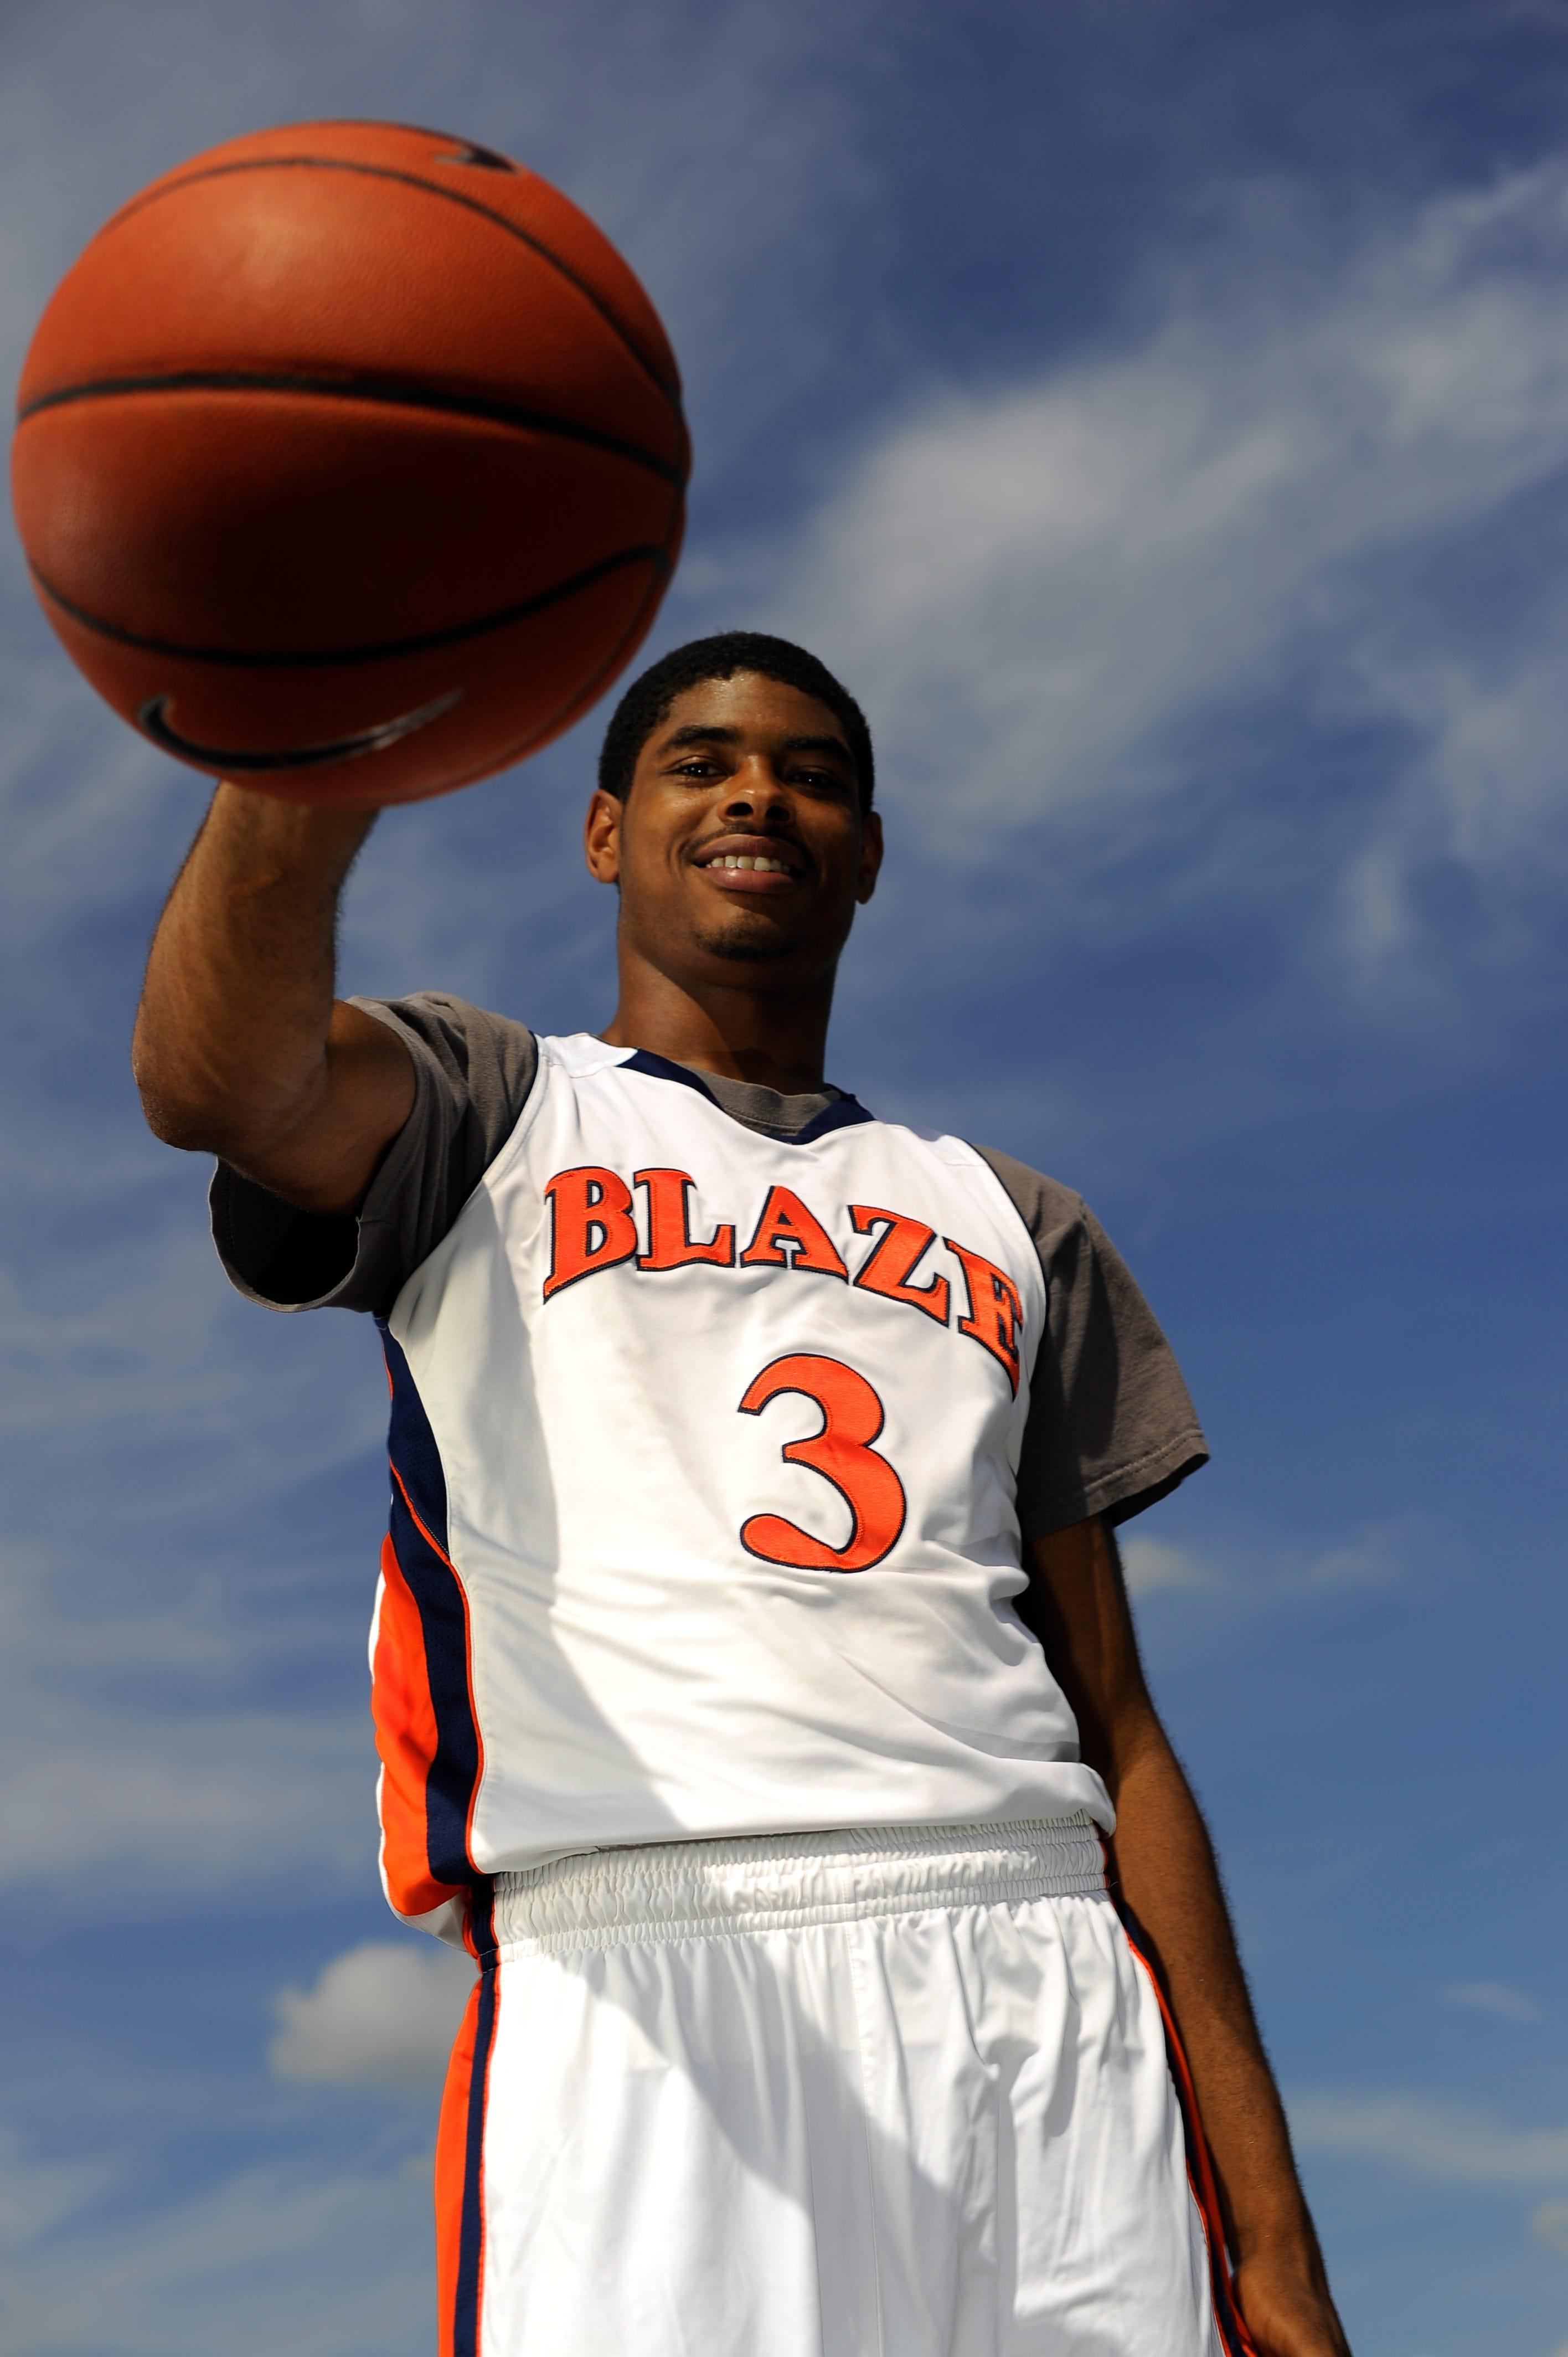 Jauan Jennings of Blackman is the Tennessean's boys high school athlete of the year.